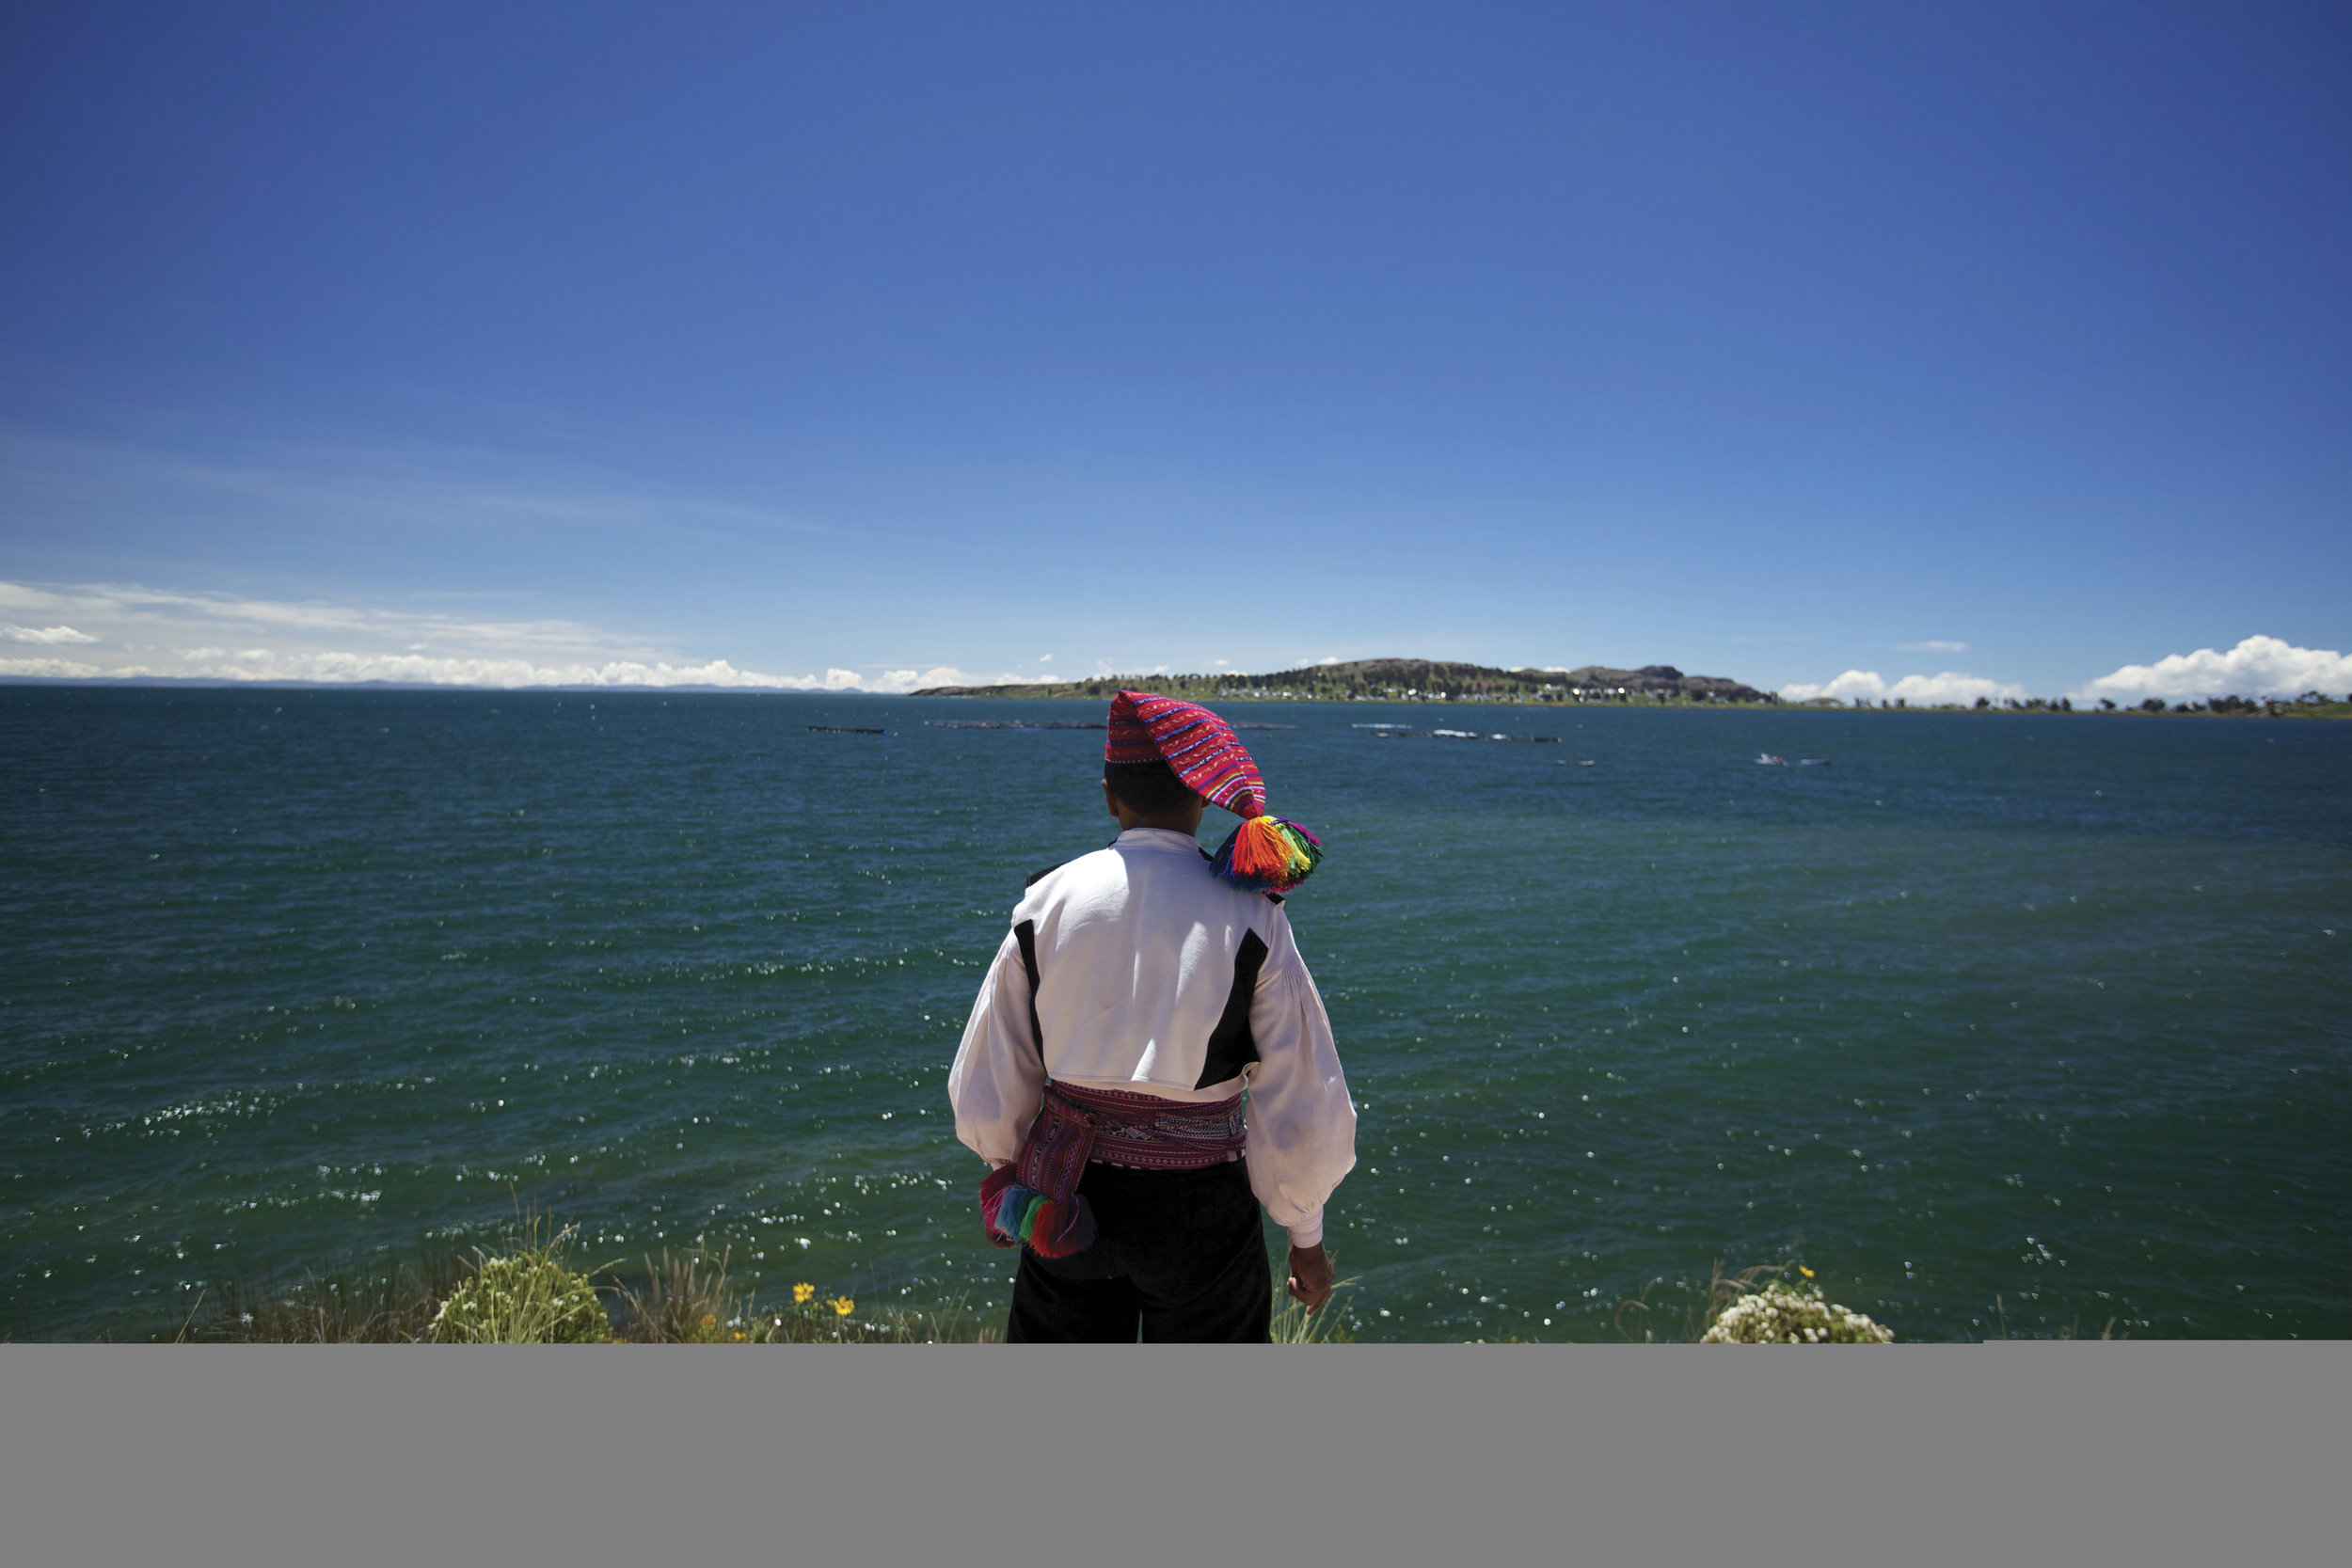 A man from Isla Taquile, in traditional dress, looks across at the sister island of Amantani.